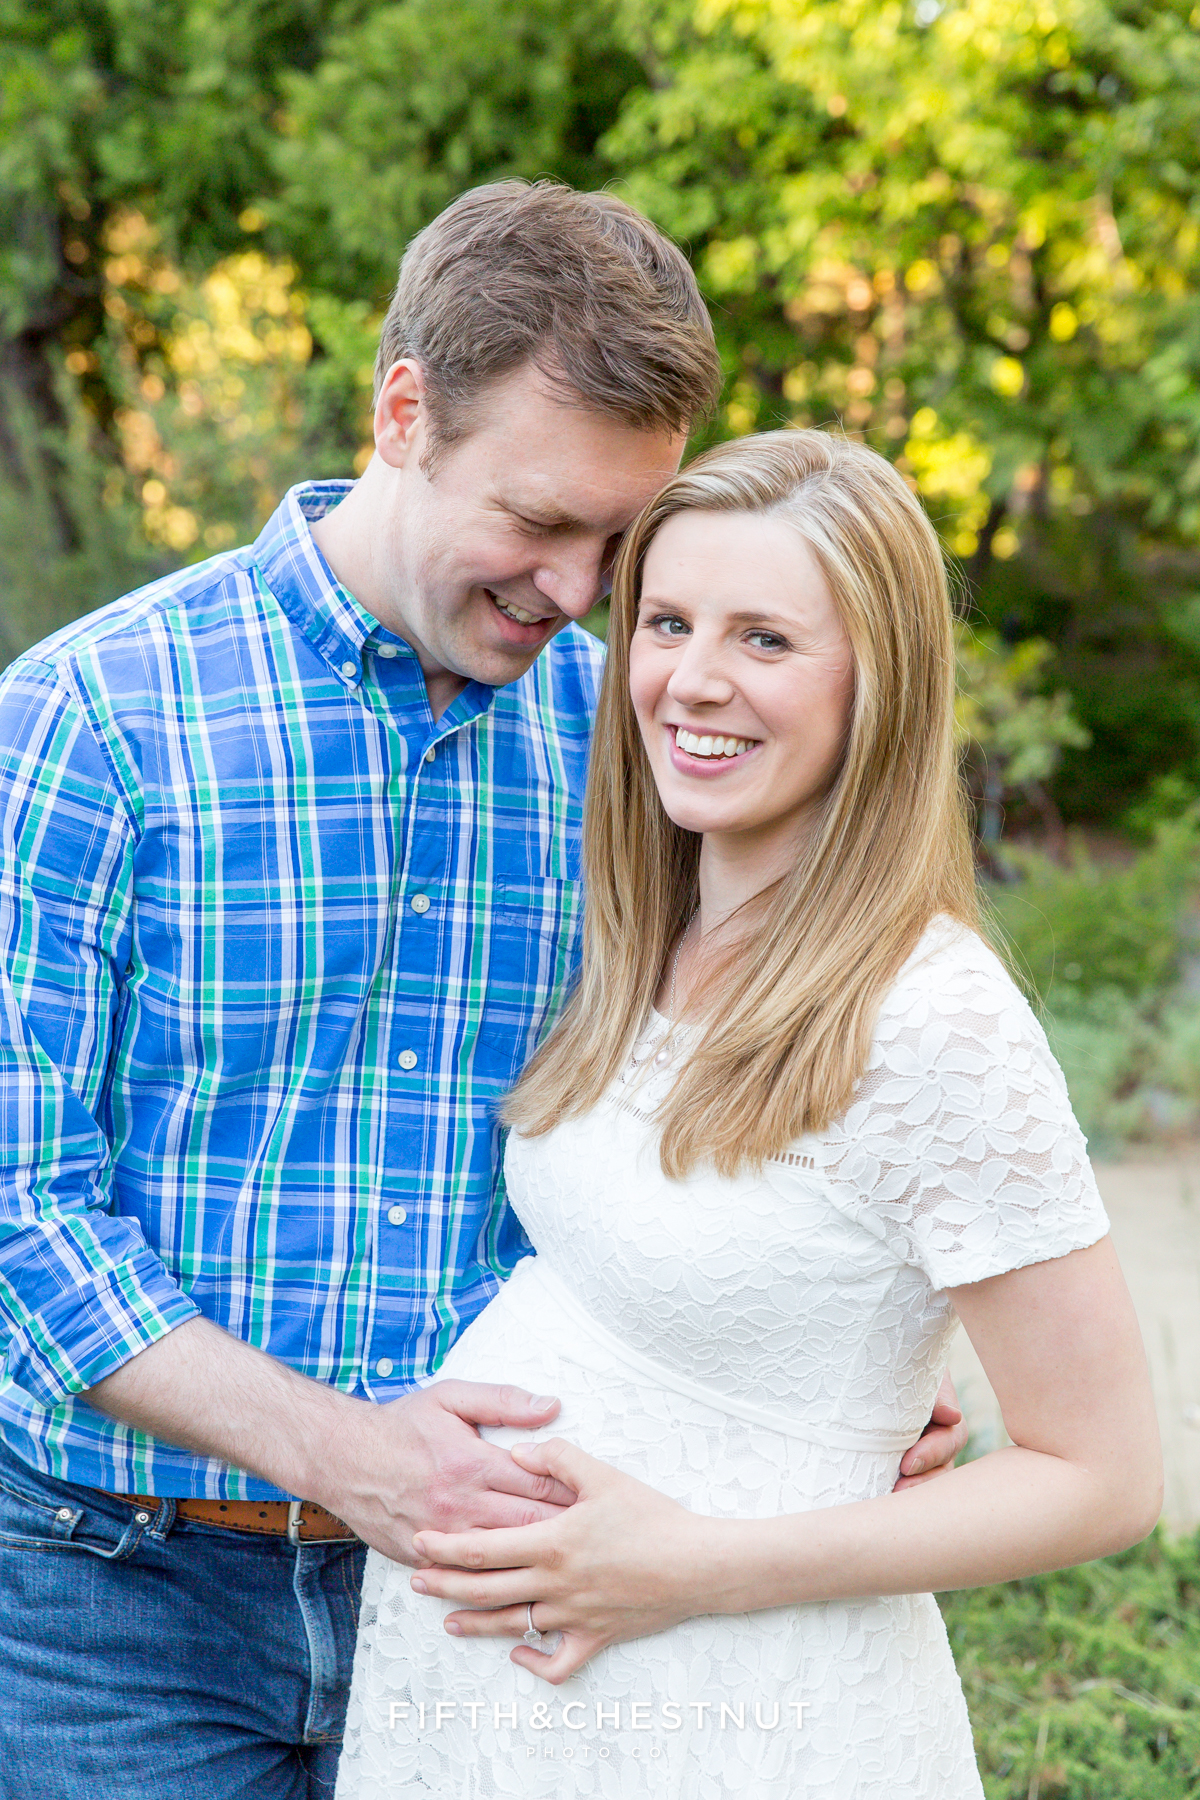 Pregnant woman poses for a picture with her husband for spring reno maternity portraits